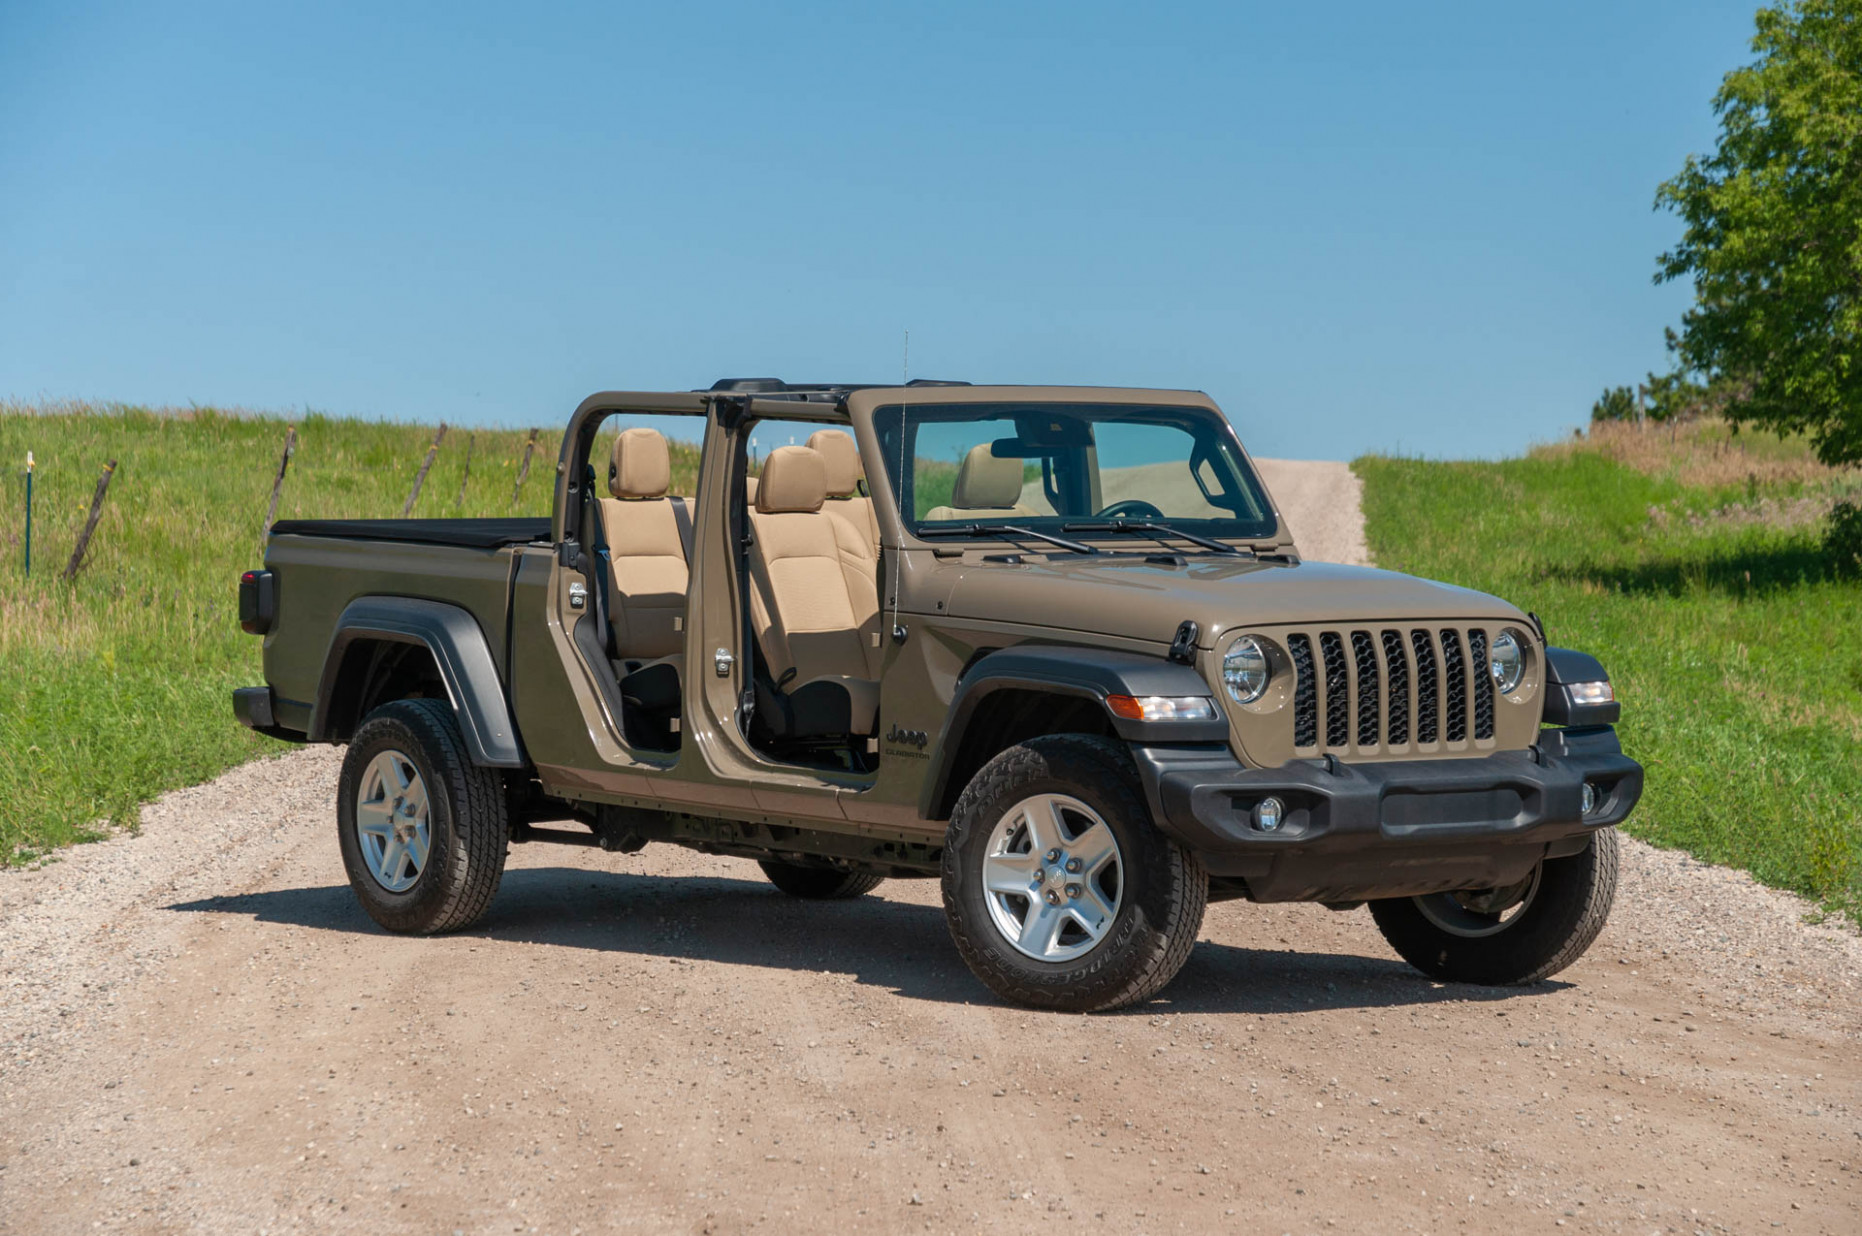 Performance and New Engine 2022 Jeep Gladiator Overall Length